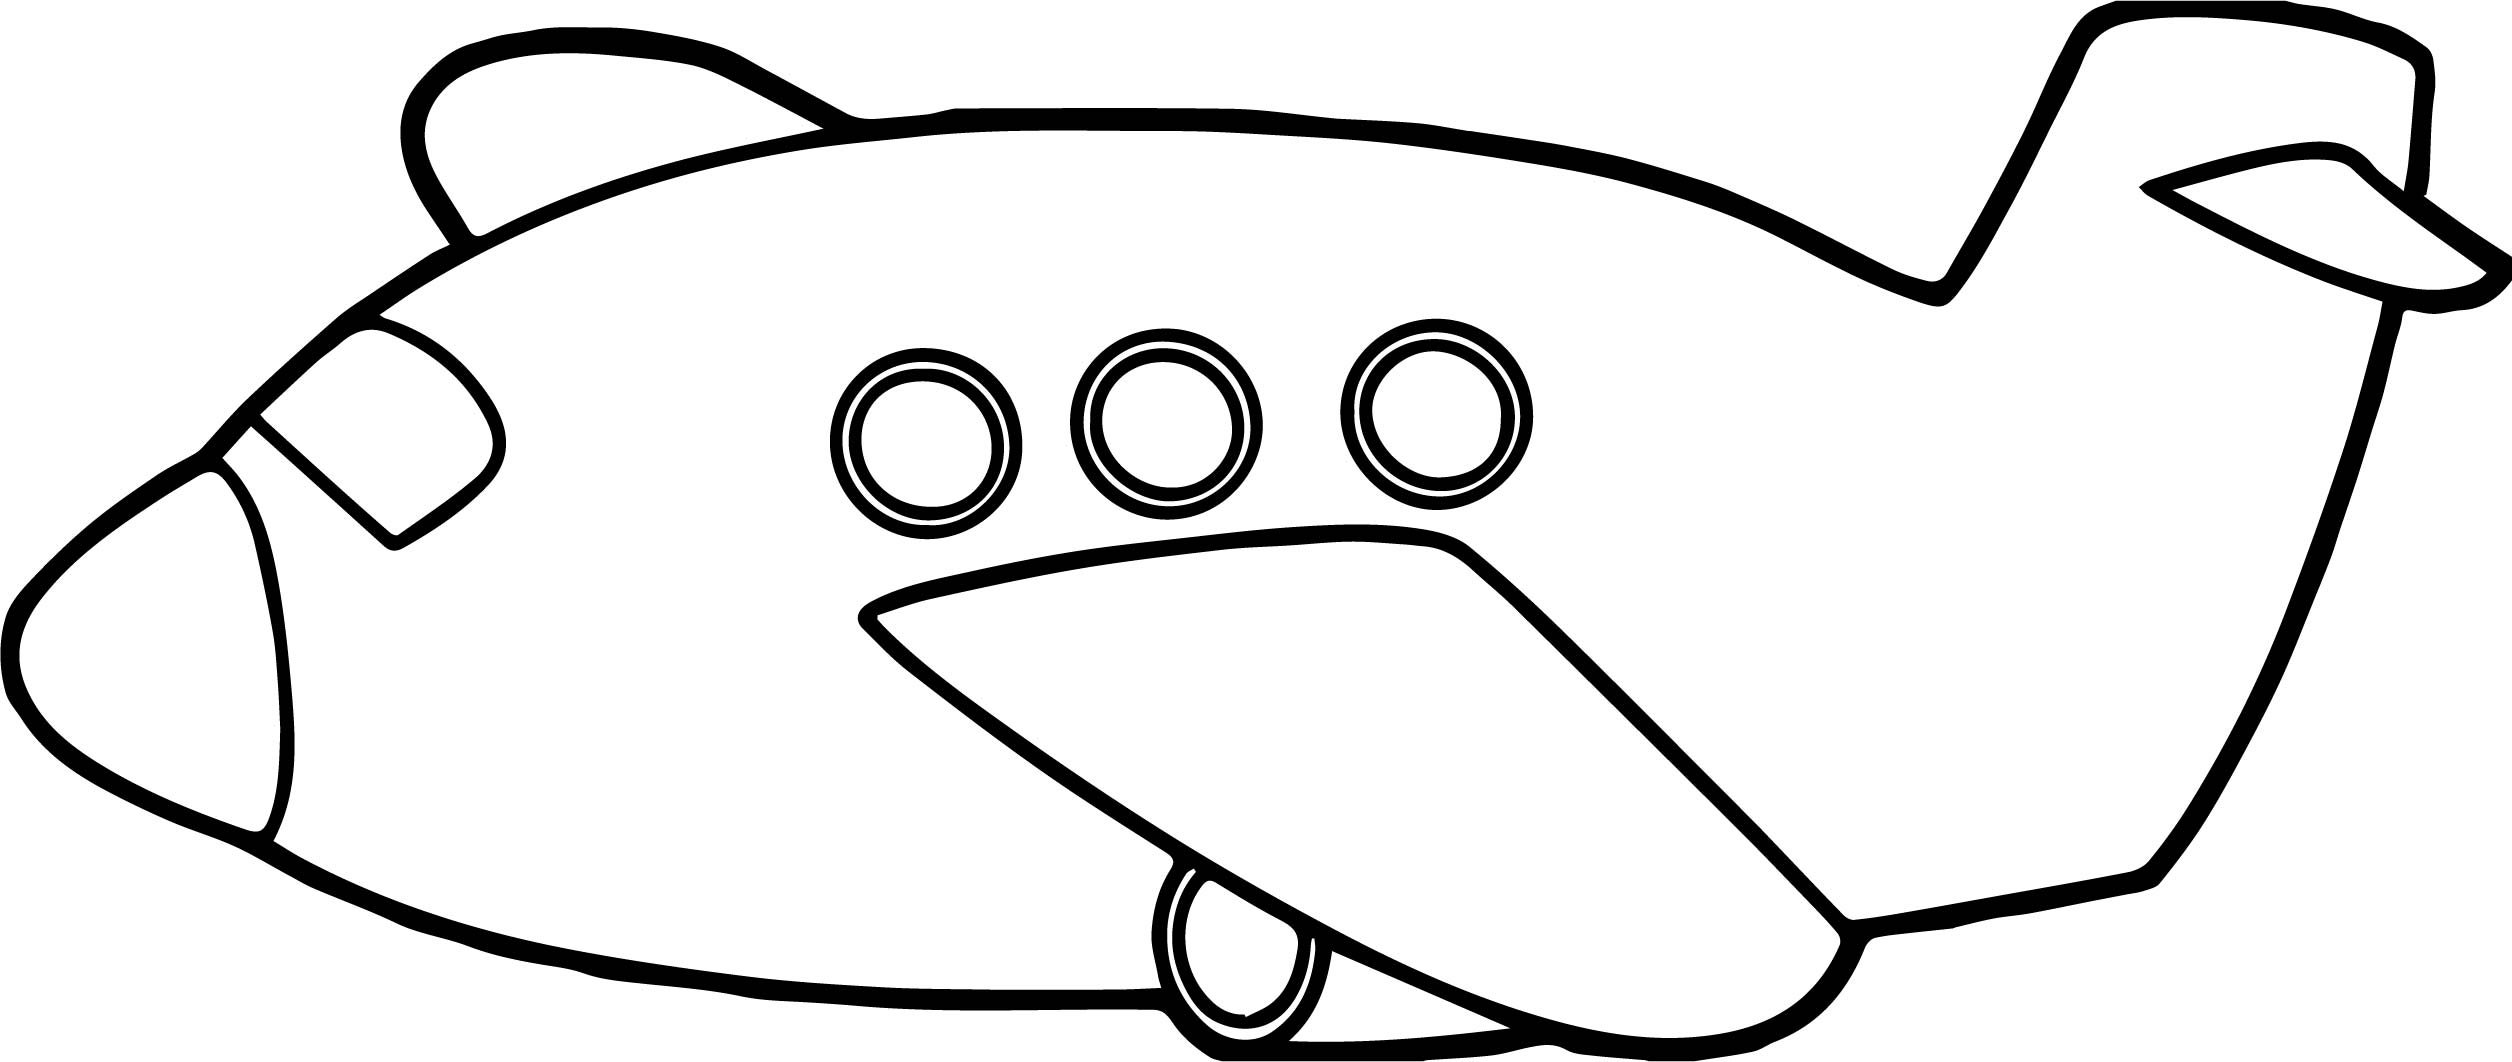 Toy Fat Airplane Coloring Page